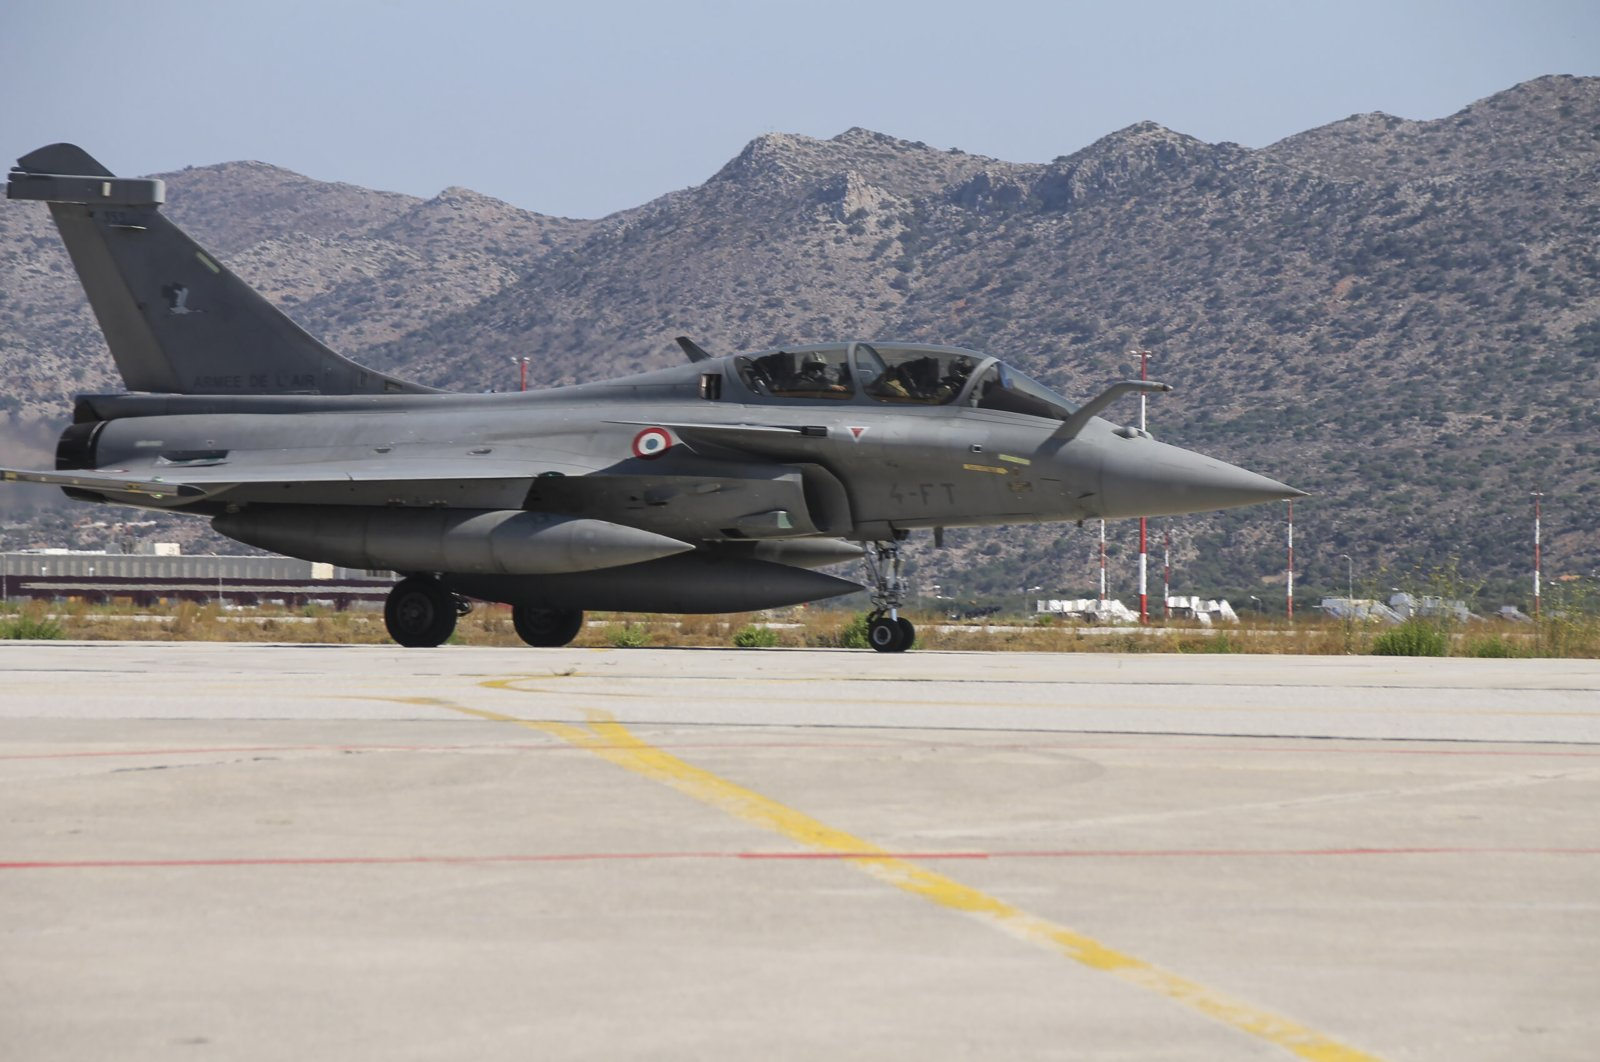 A French Rafale fighter jet sits at the Souda Air Base on the island of Crete, Greece, Aug. 13, 2020, in this photo provided by the Greek defense ministry. (AP Photo)